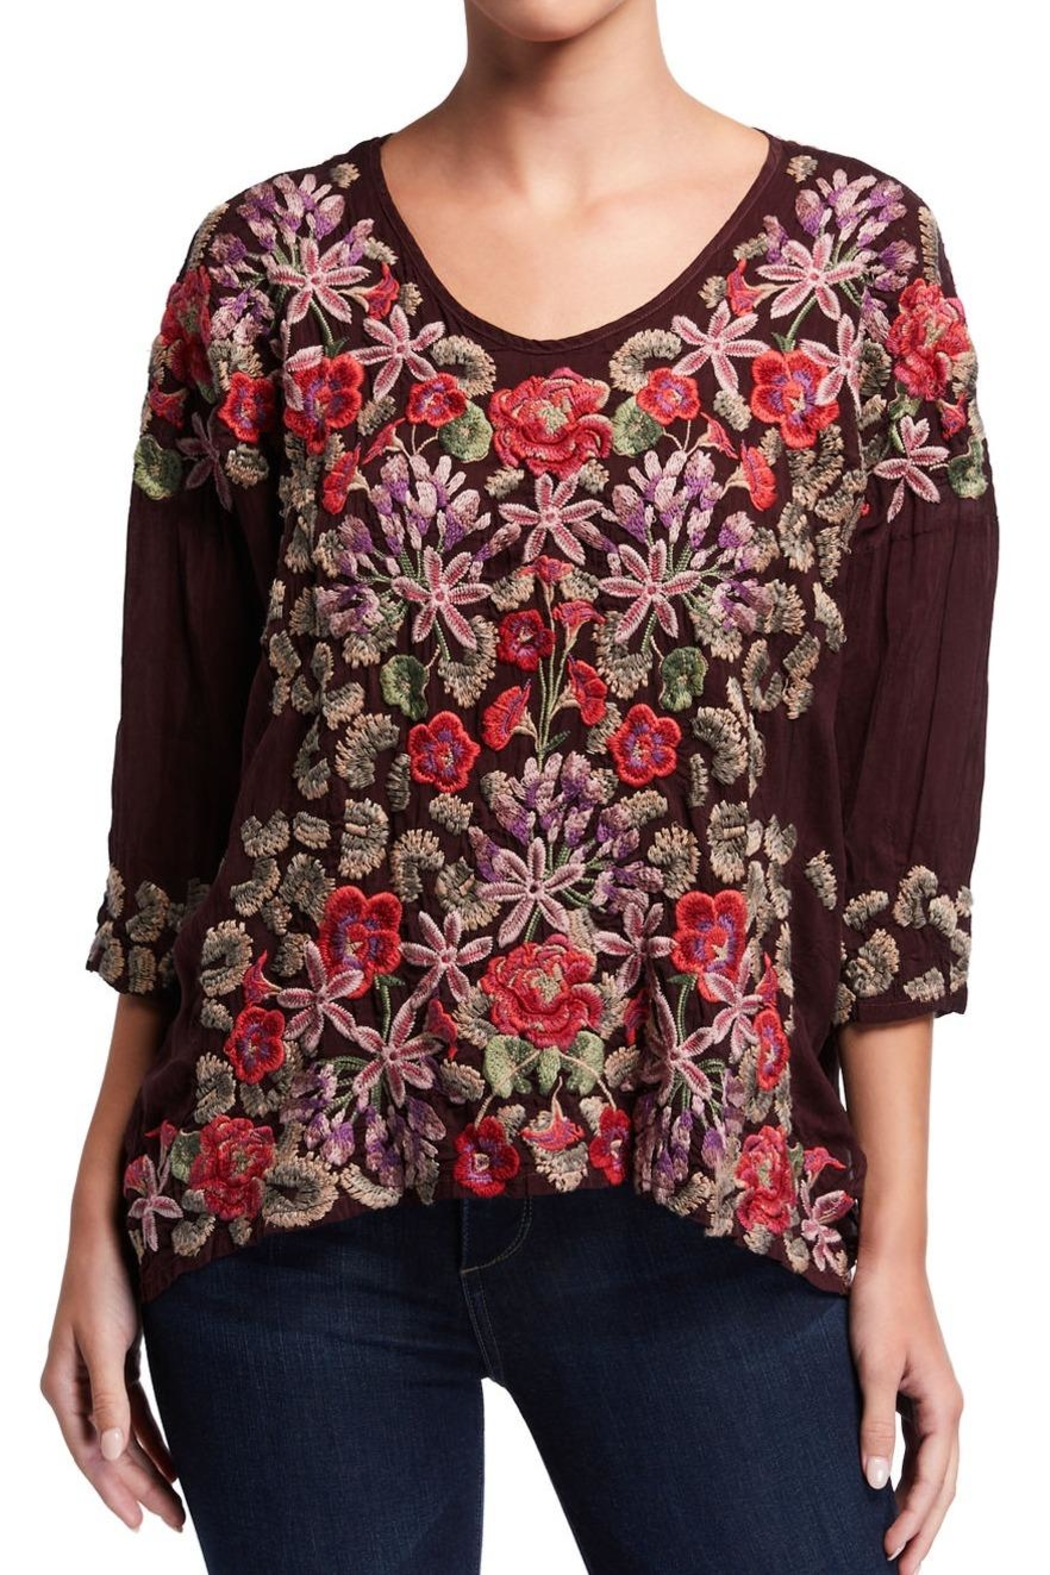 Johnny Was Leopard Rose Top - Main Image